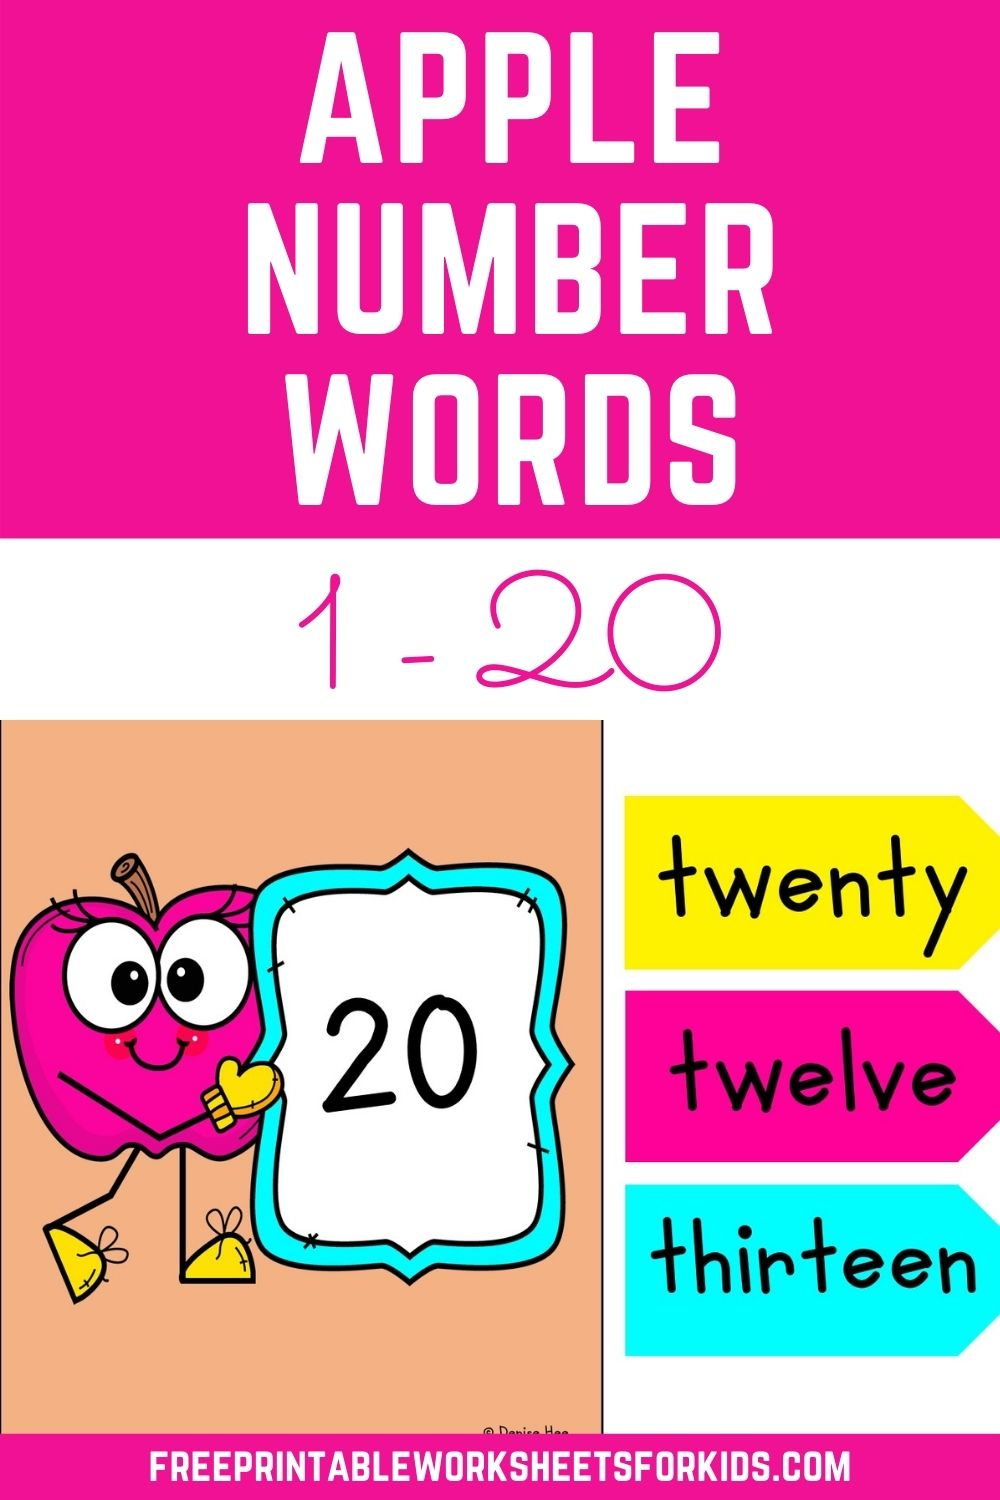 Apple Number Words to 20 Game